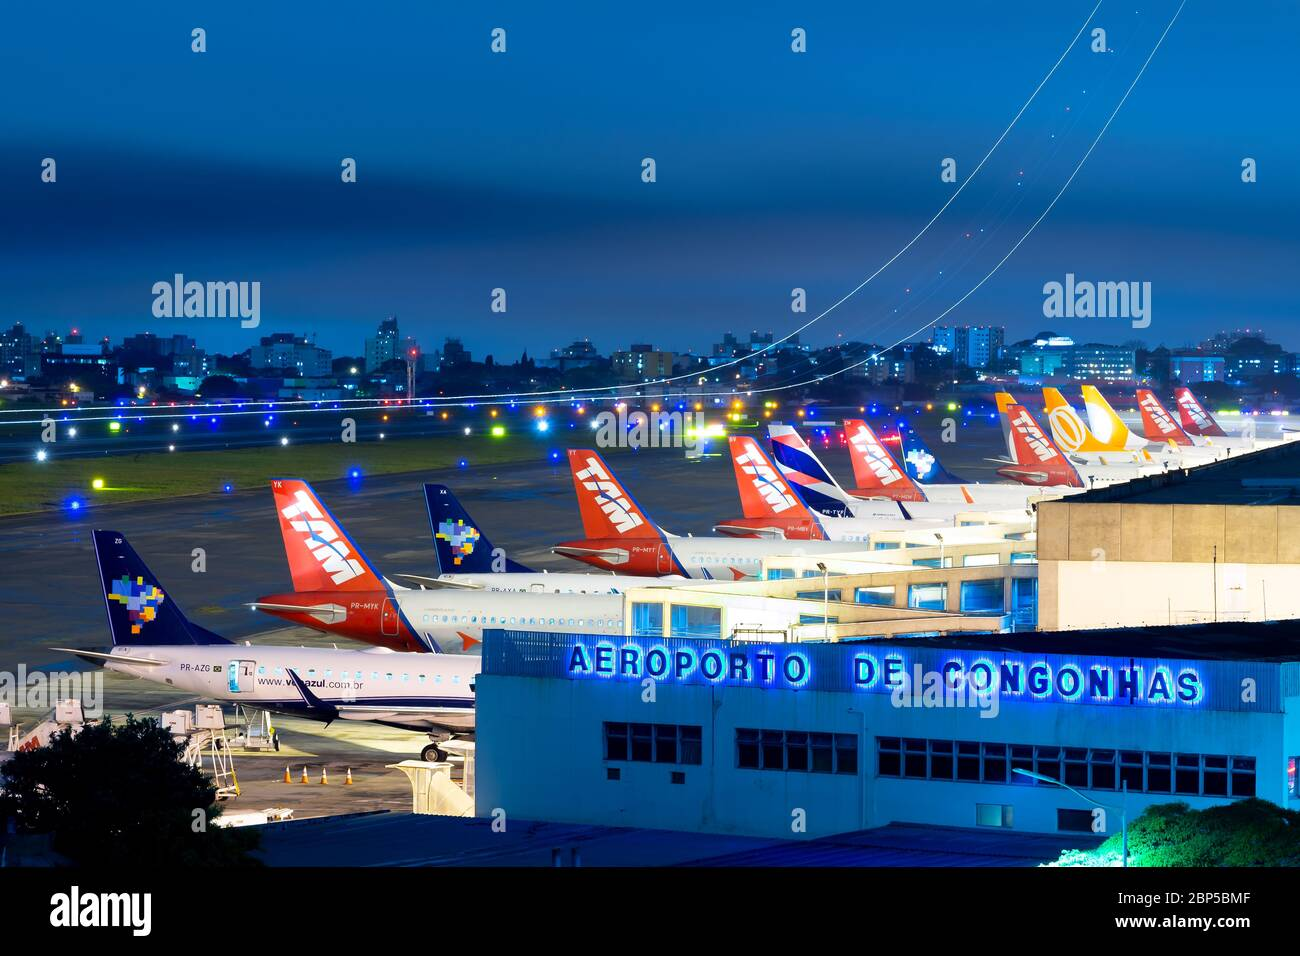 sao-paulo-congonhas-airport-showing-mult